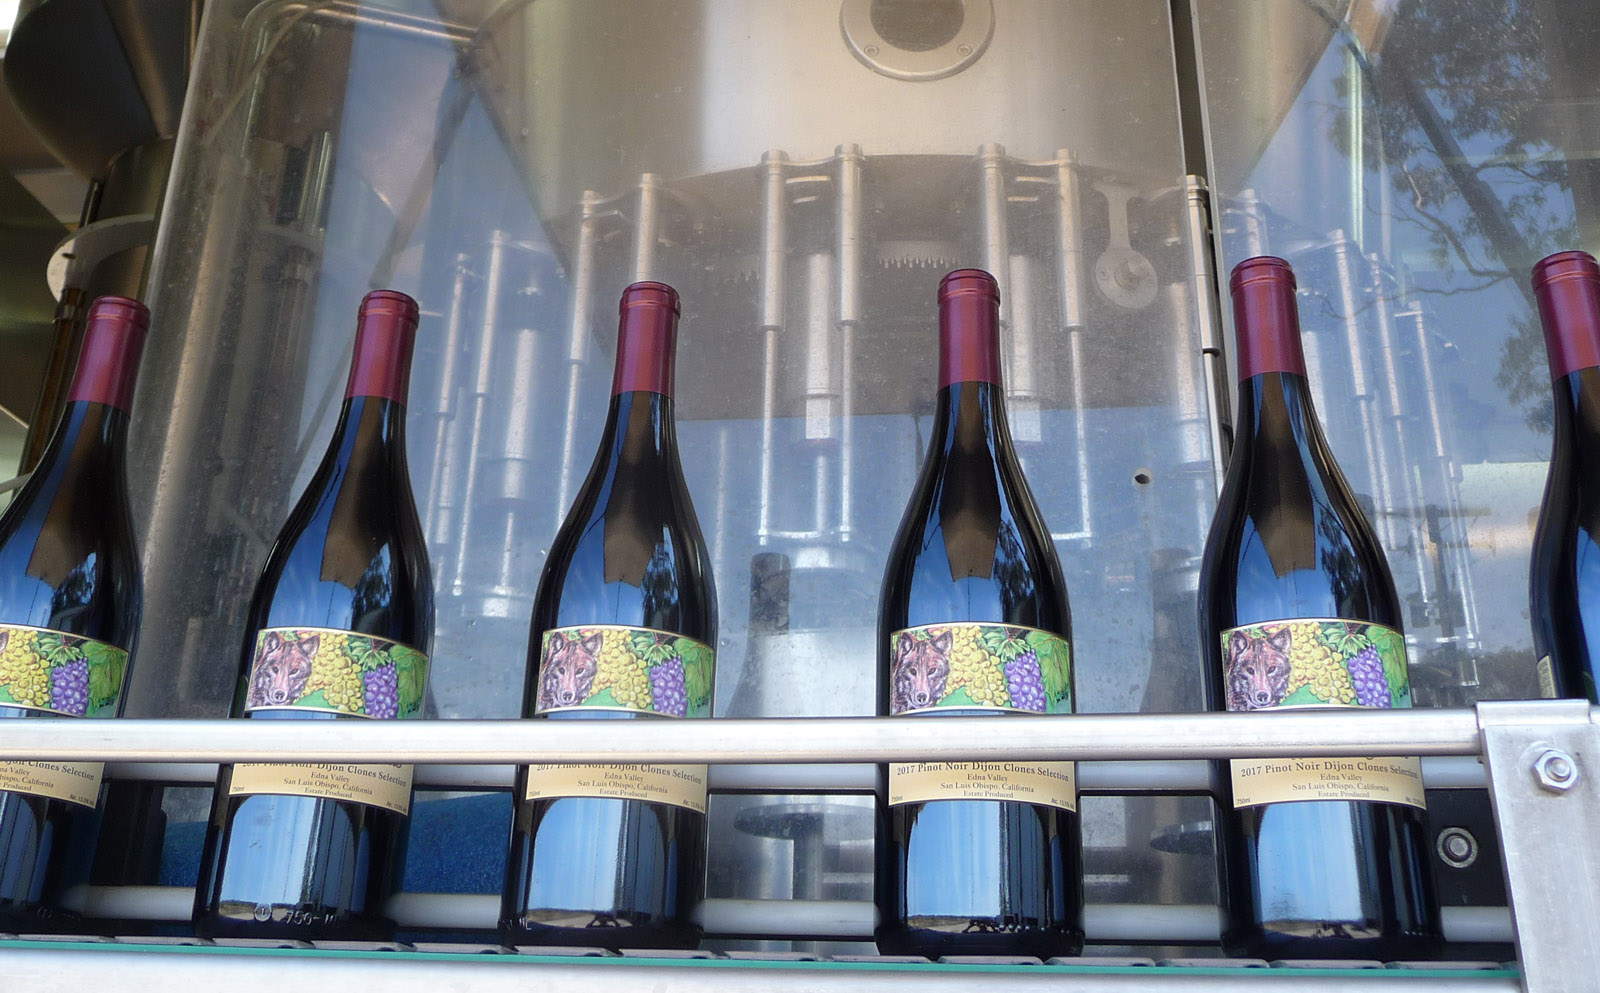 Wine bottles in production, showing finished winte bottles coming off of the bottling line